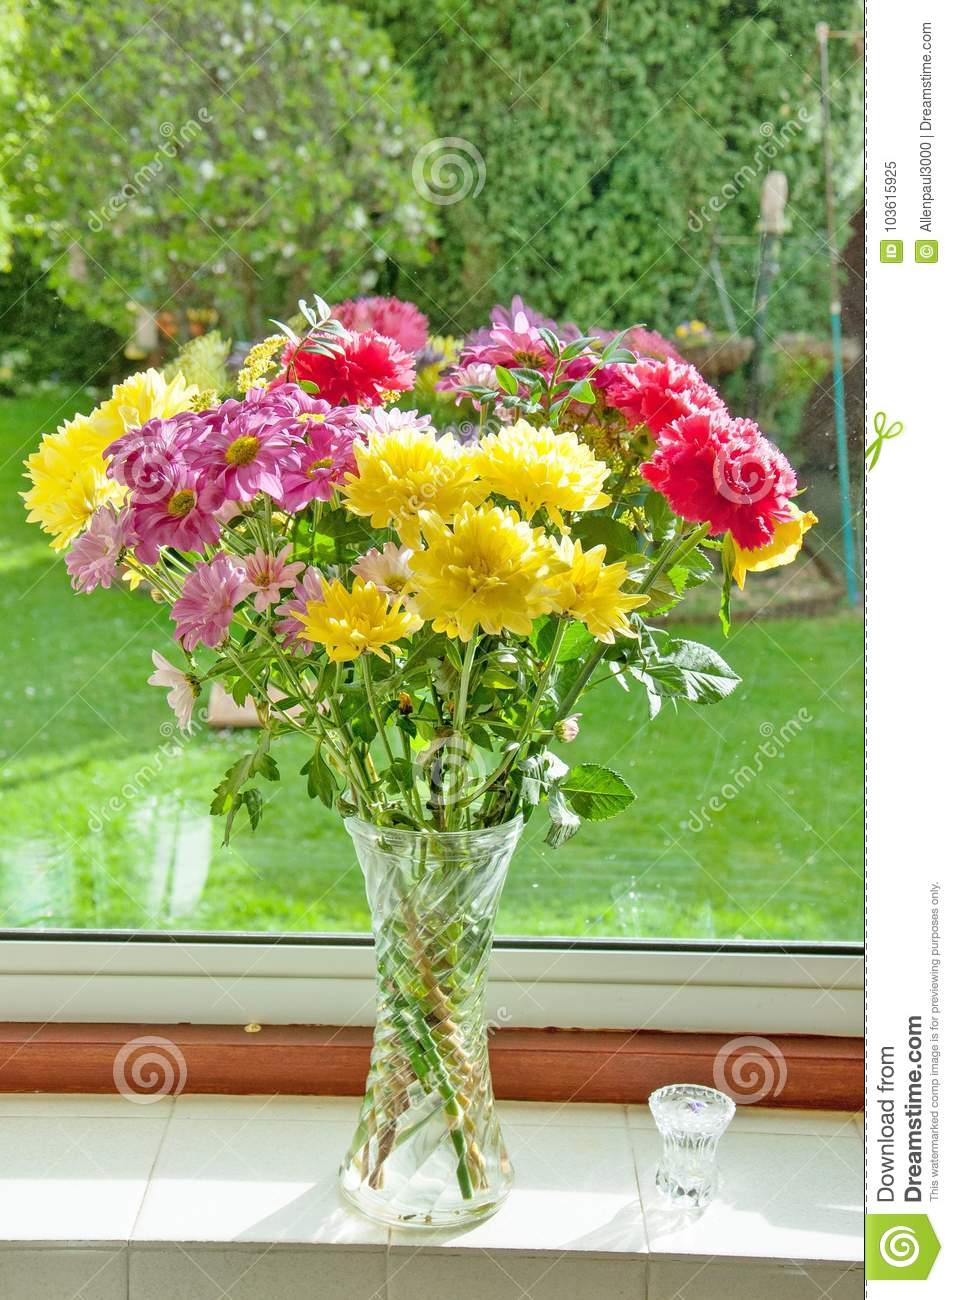 Beautiful flowers in a vase stock image image of vase colorful beautiful flowers in a vase izmirmasajfo